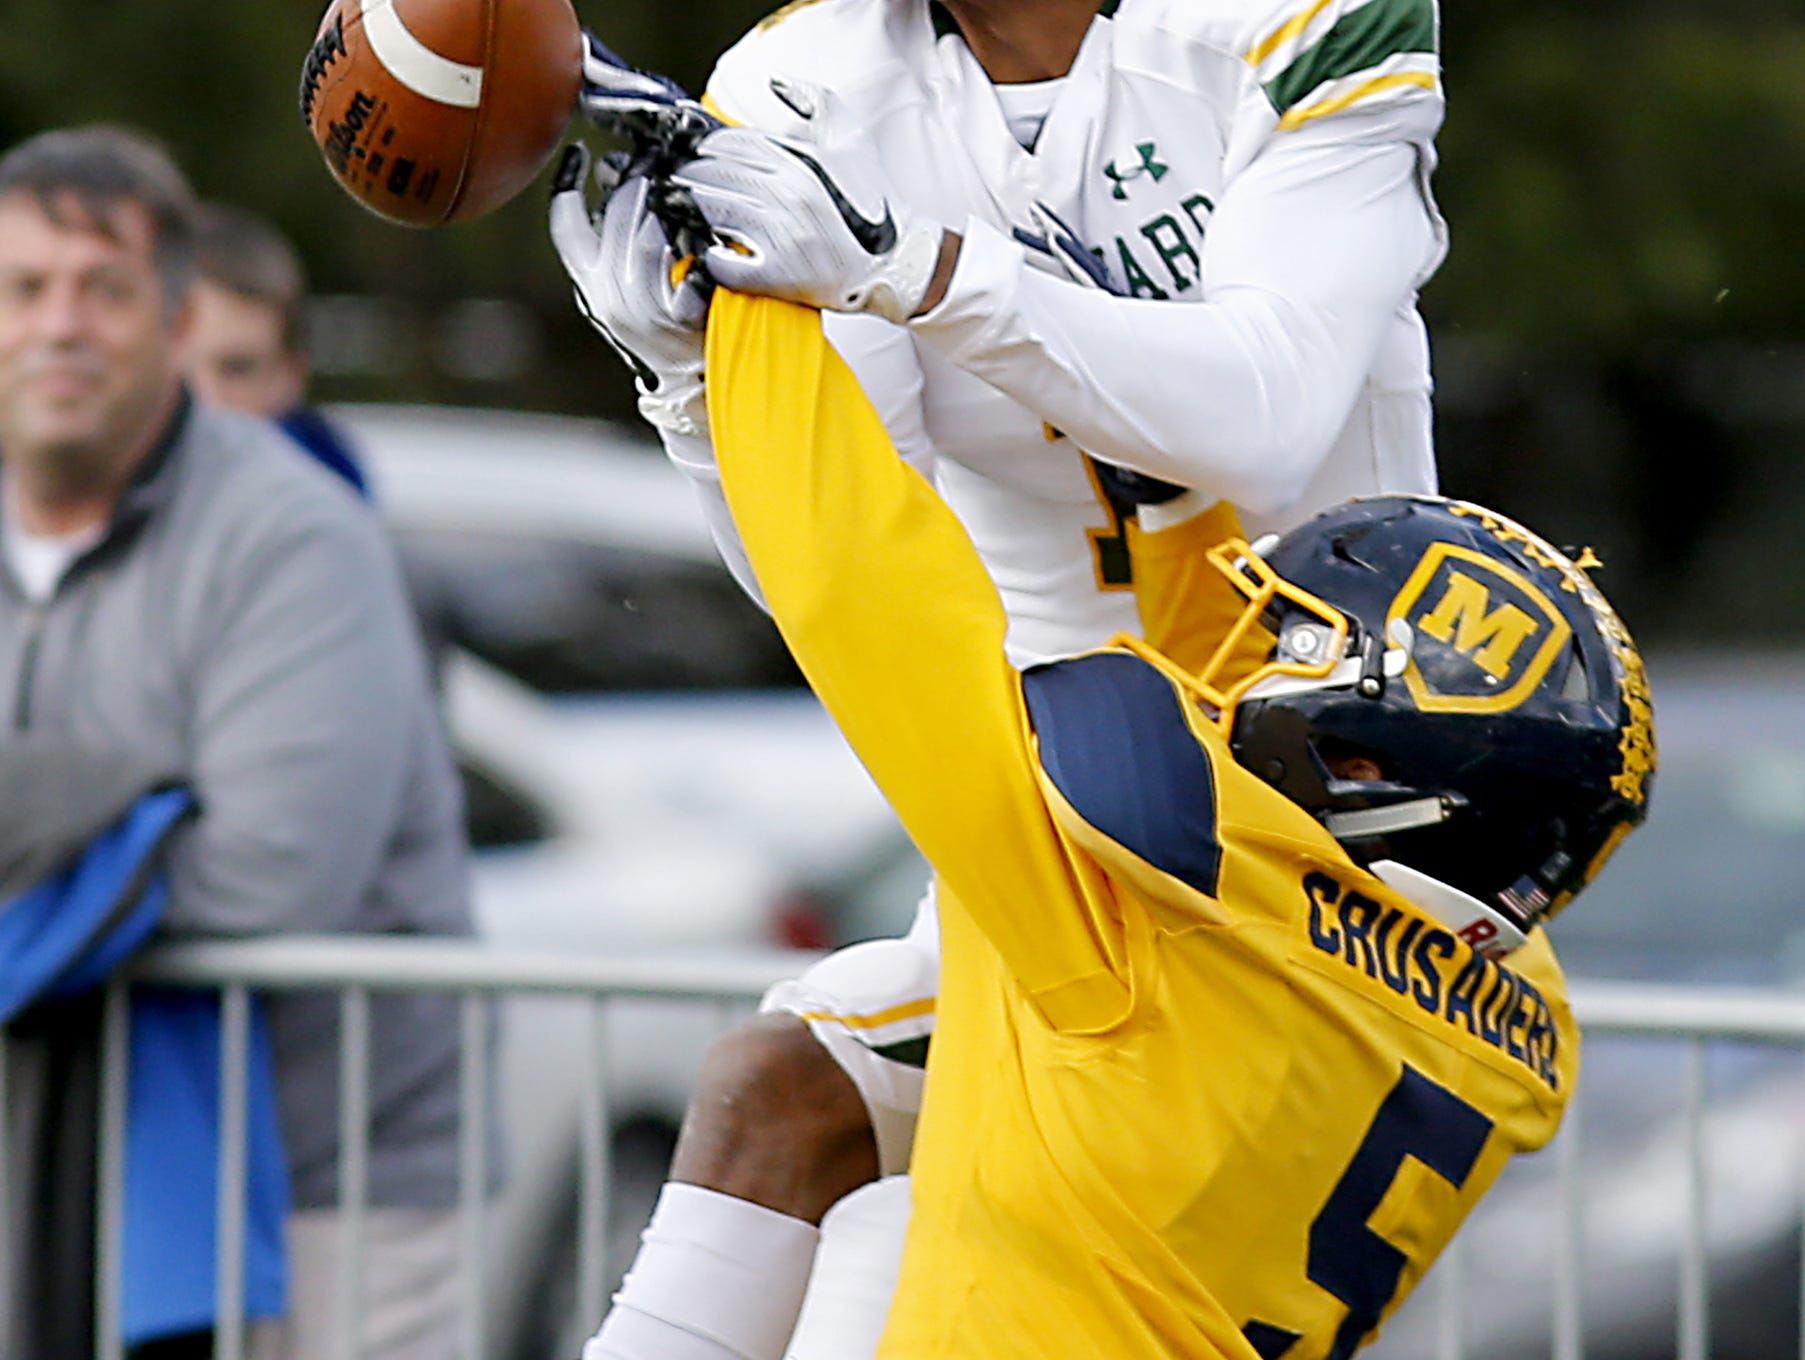 Moeller defensive back B.J. Hendrix, Jr., breaks up the pass meant for Lakewood St. Edward wide receiver Quintel Kent during their game at Lockland Saturday, Oct. 20, 2018.